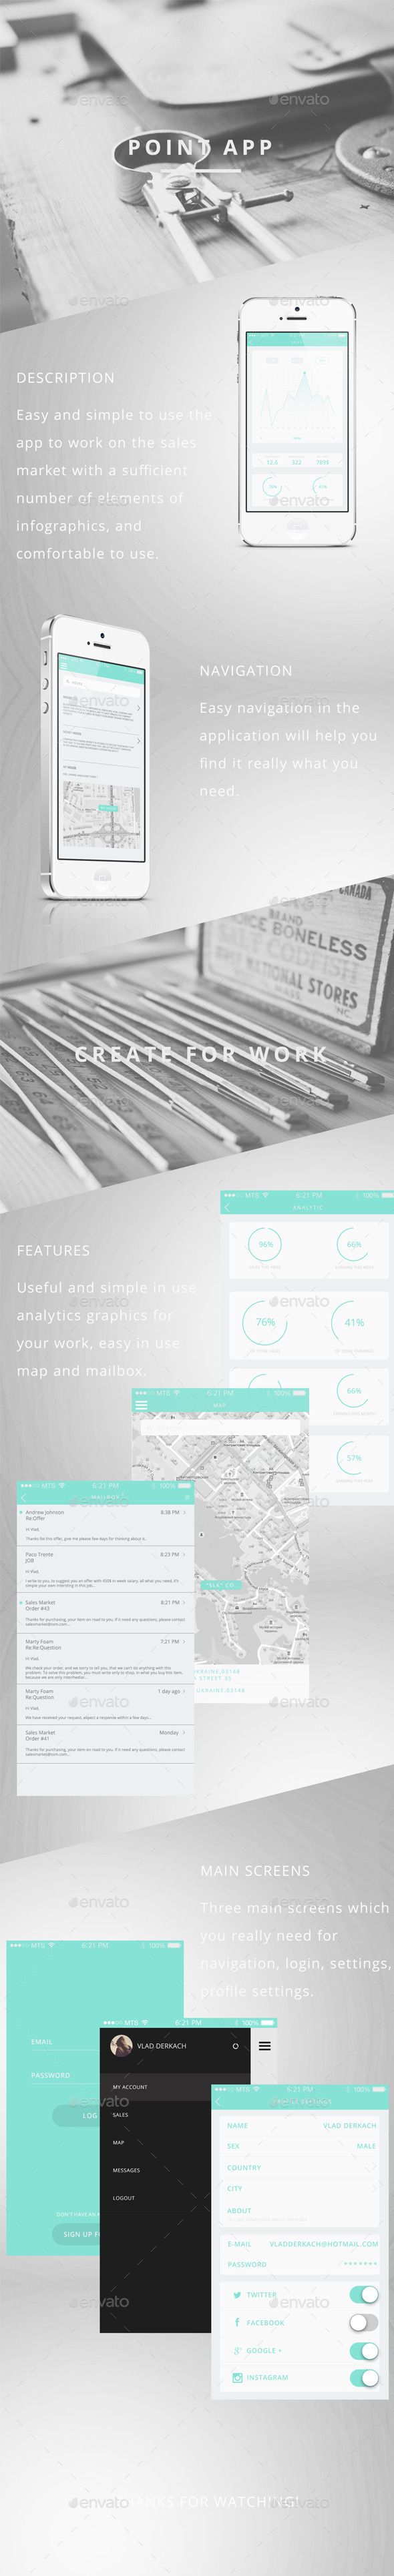 GraphicRiver Point App UI 11409708